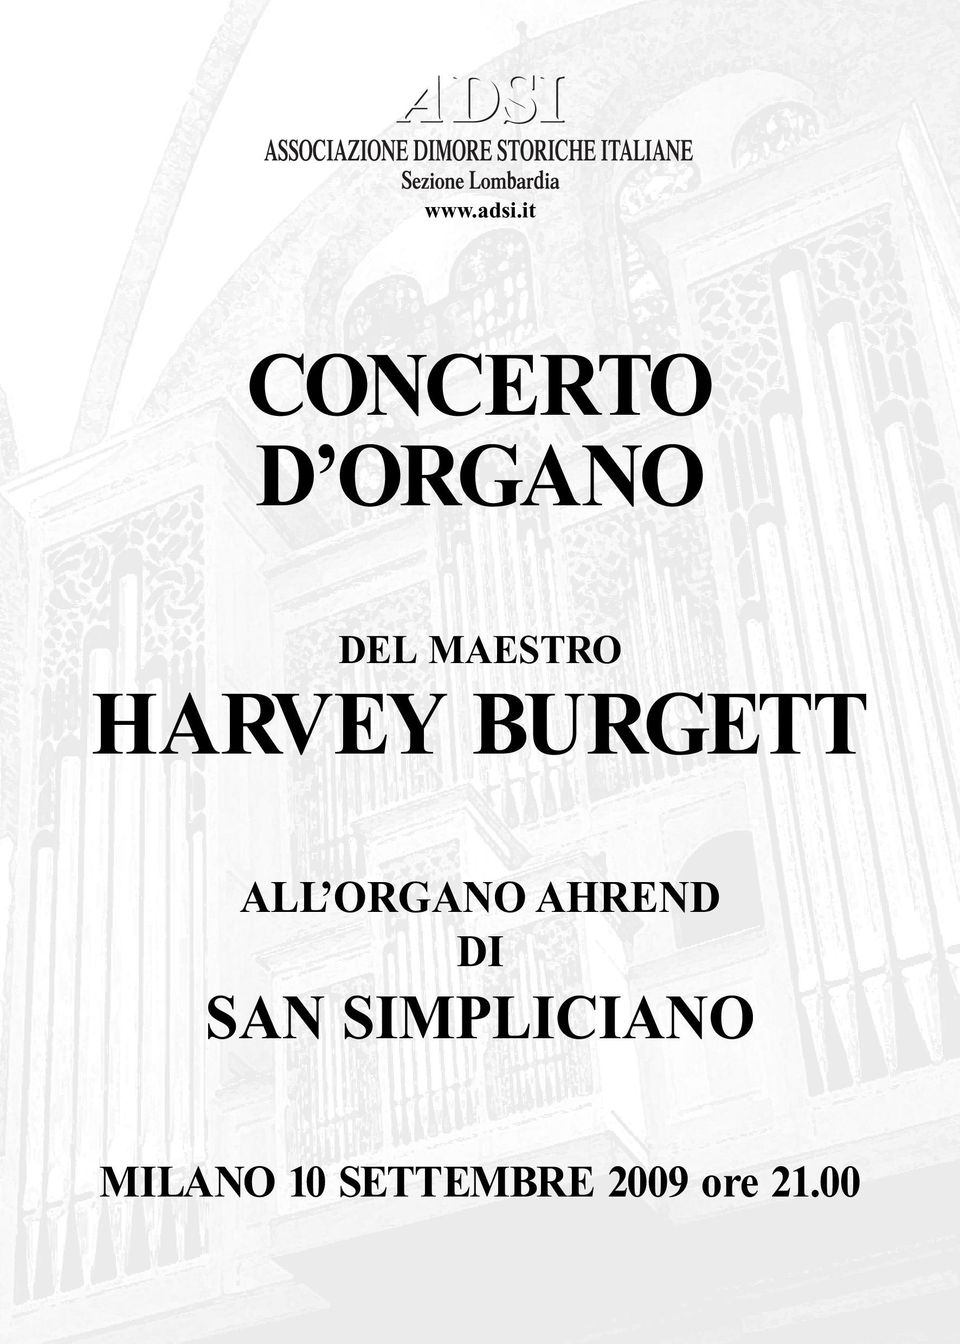 MAESTRO HARVEY BURGETT ALL